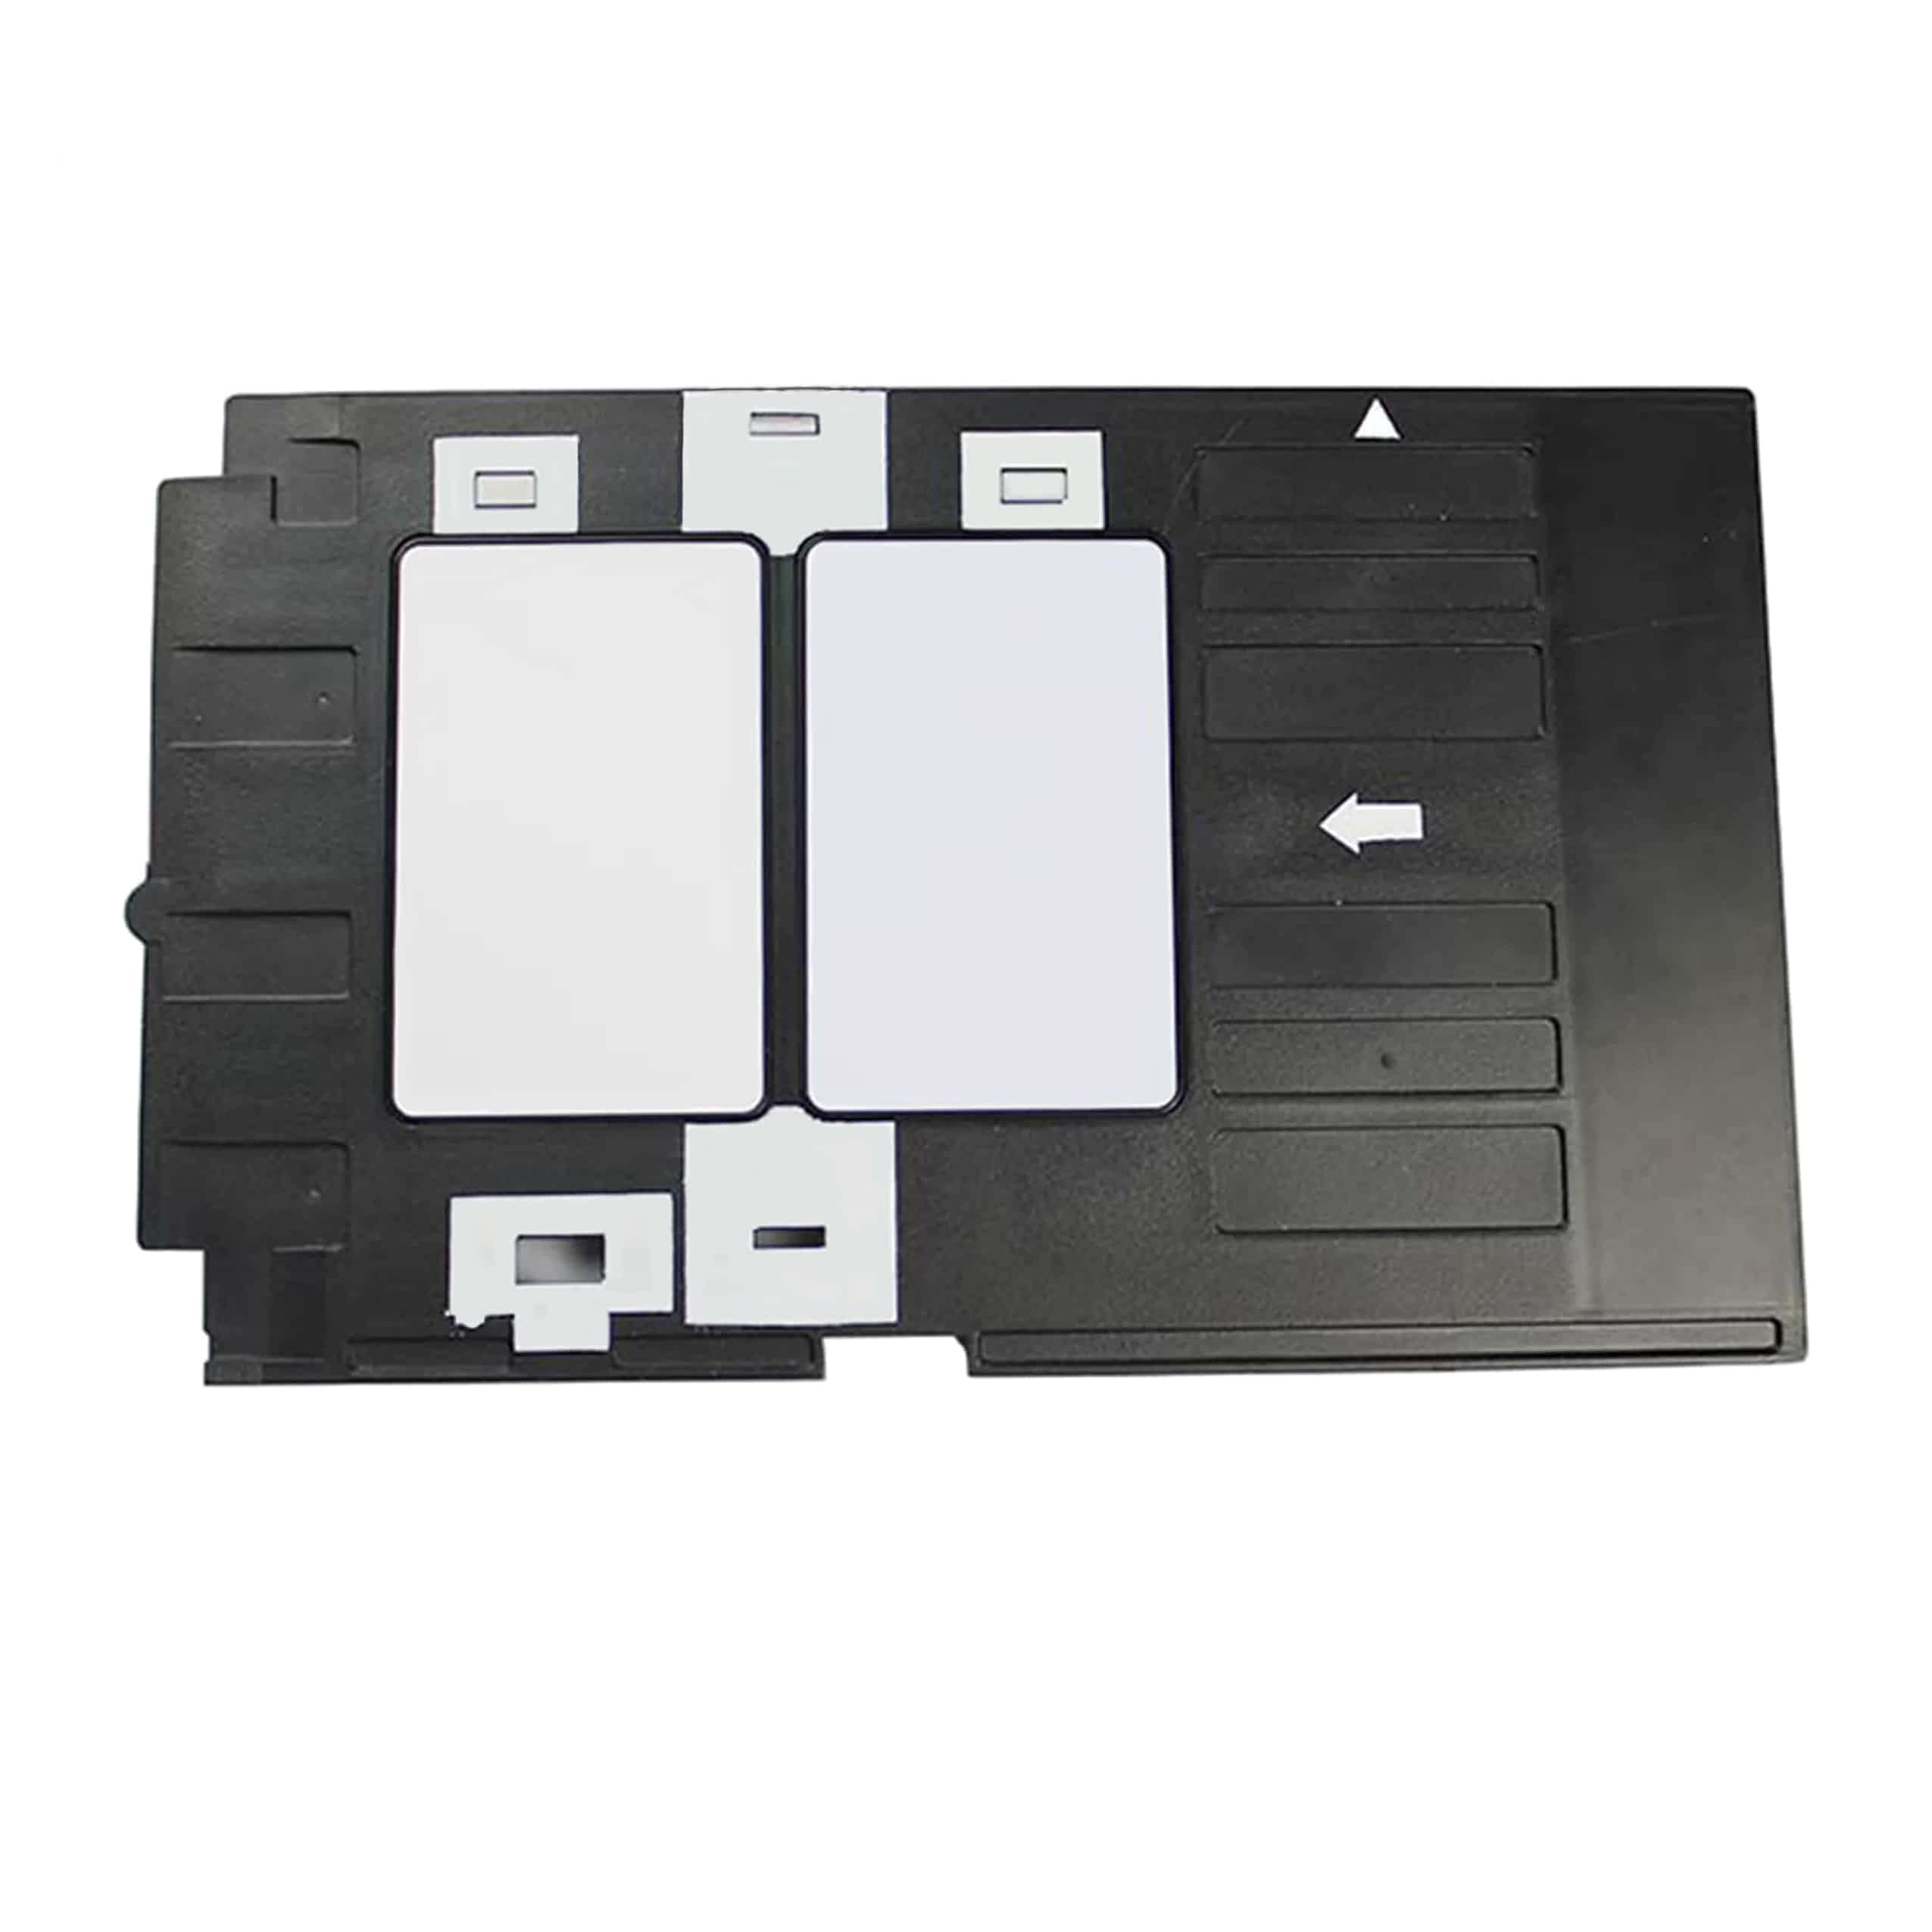 epson-printer-inkjet-card-tray